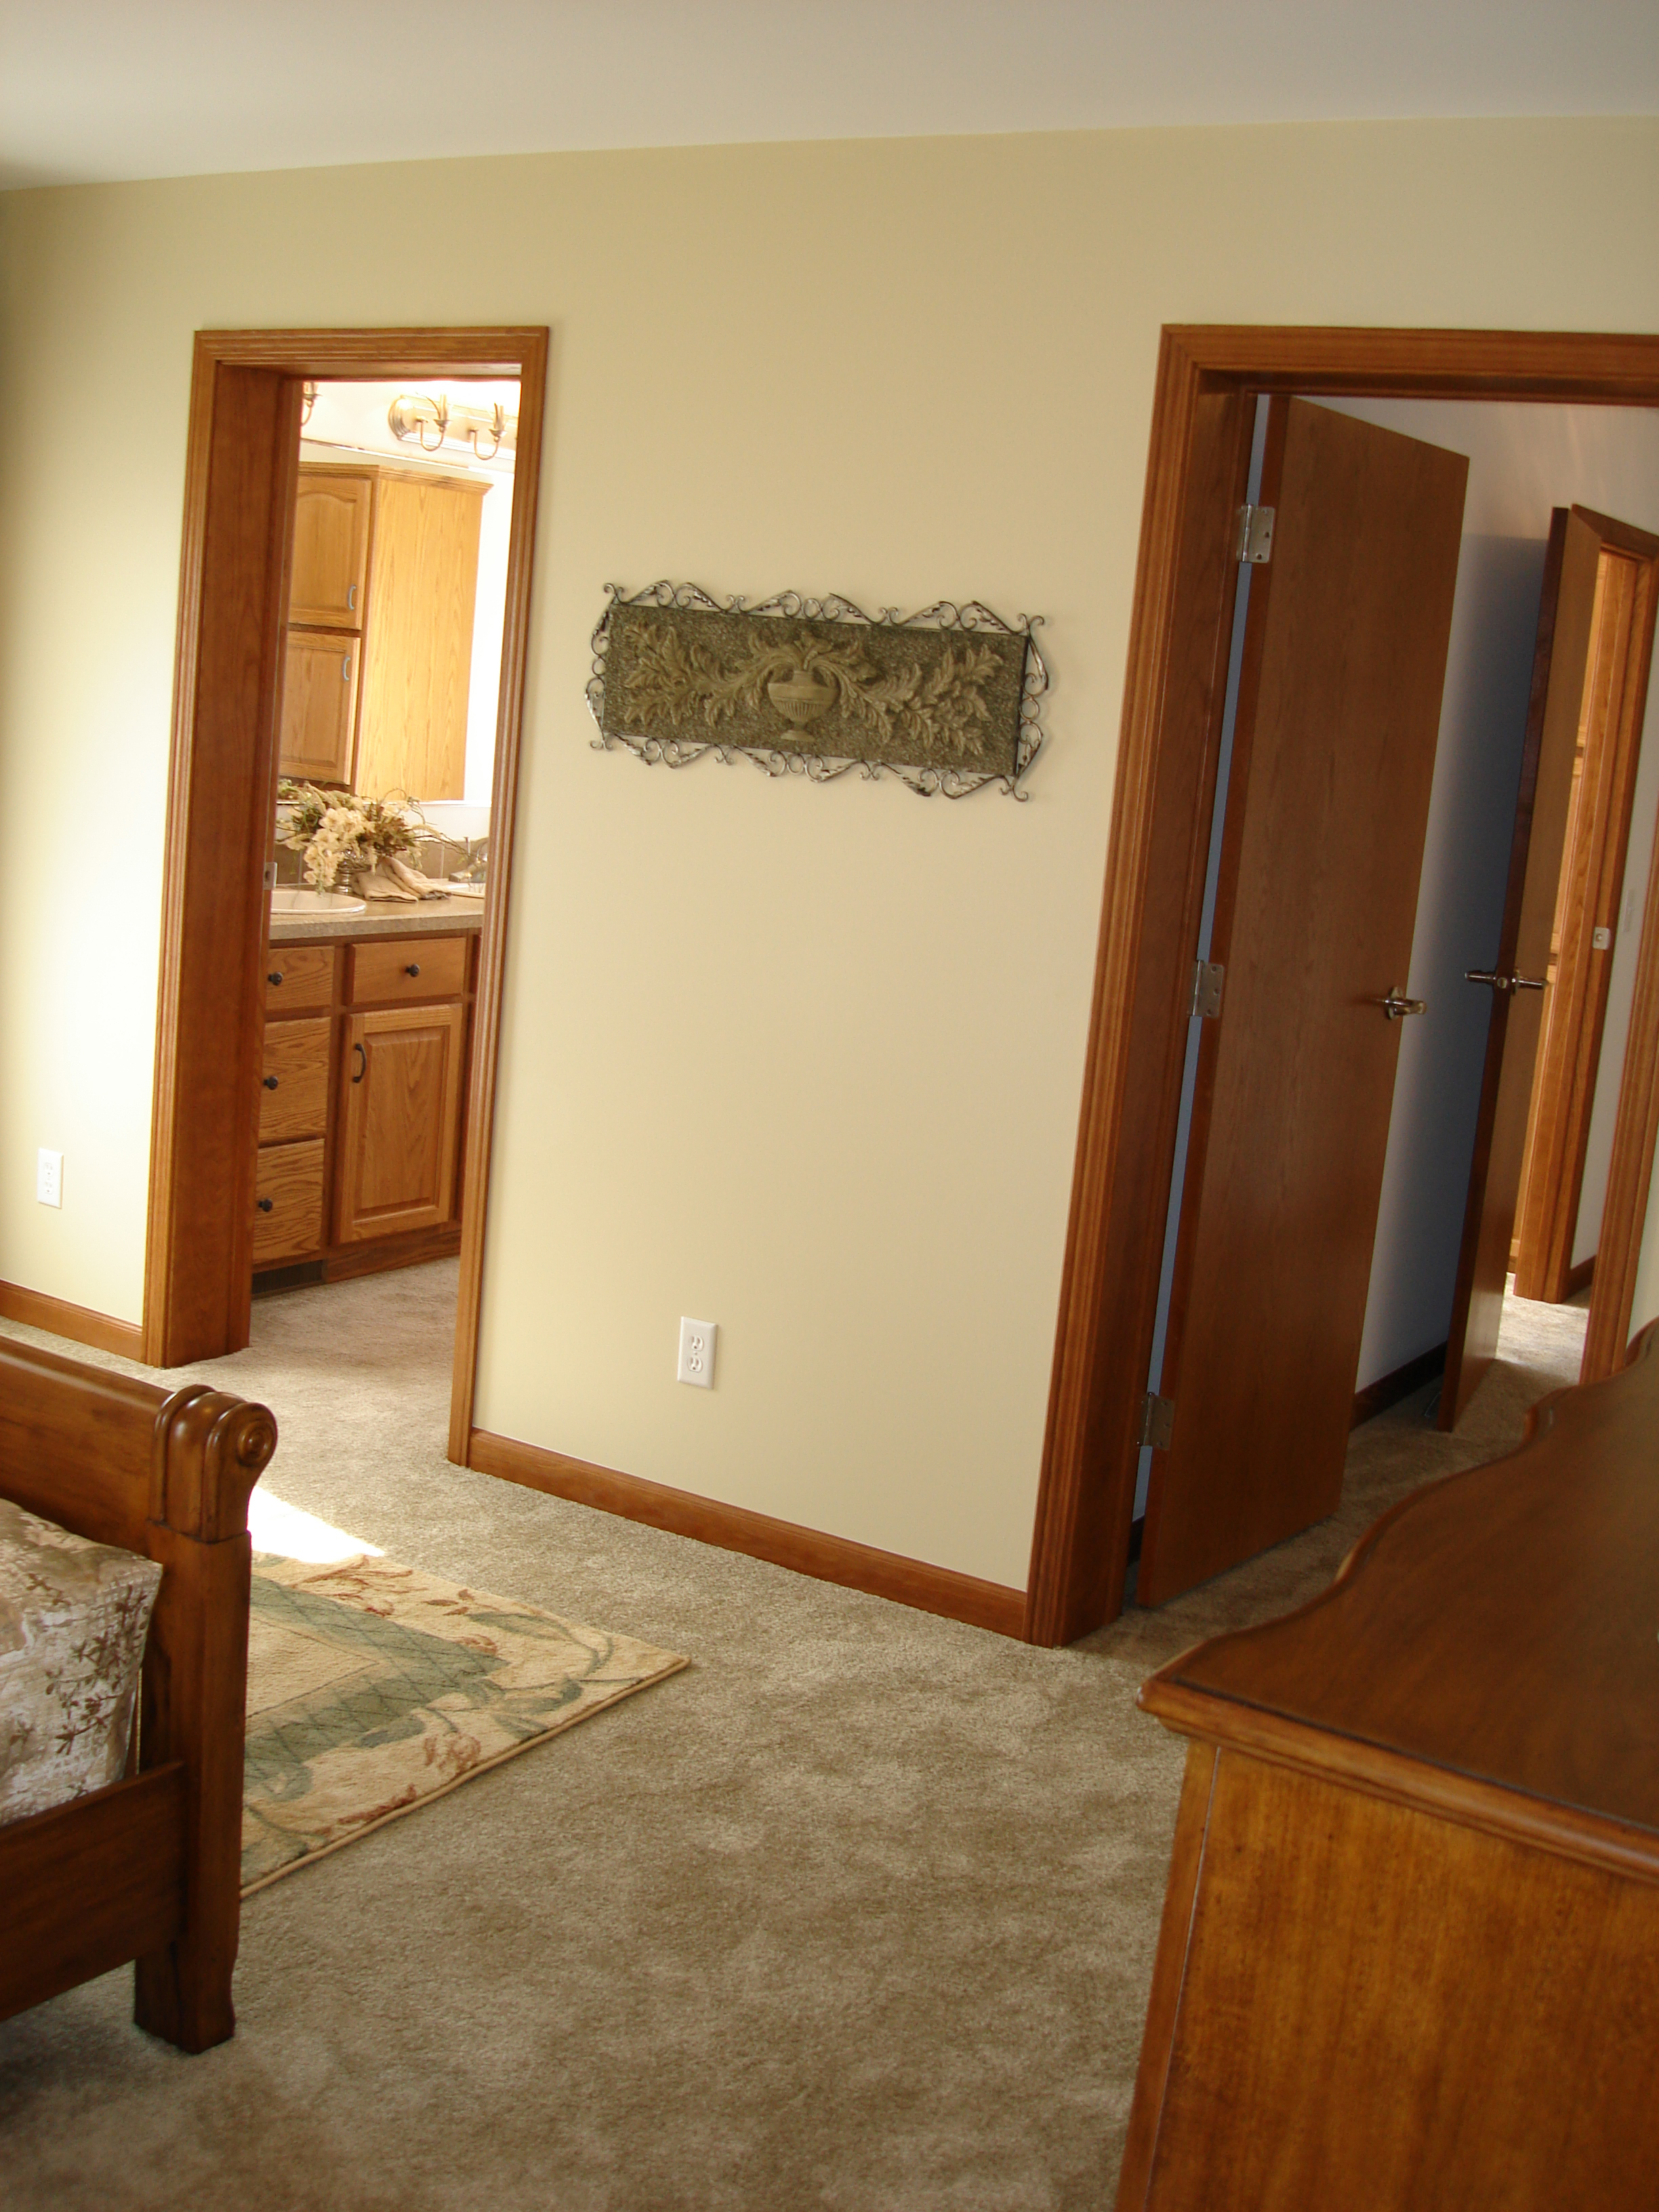 Pennwest quincy ii model hf117 a ranch style modular home sample home photo tour photo 35 Entrance to master bedroom